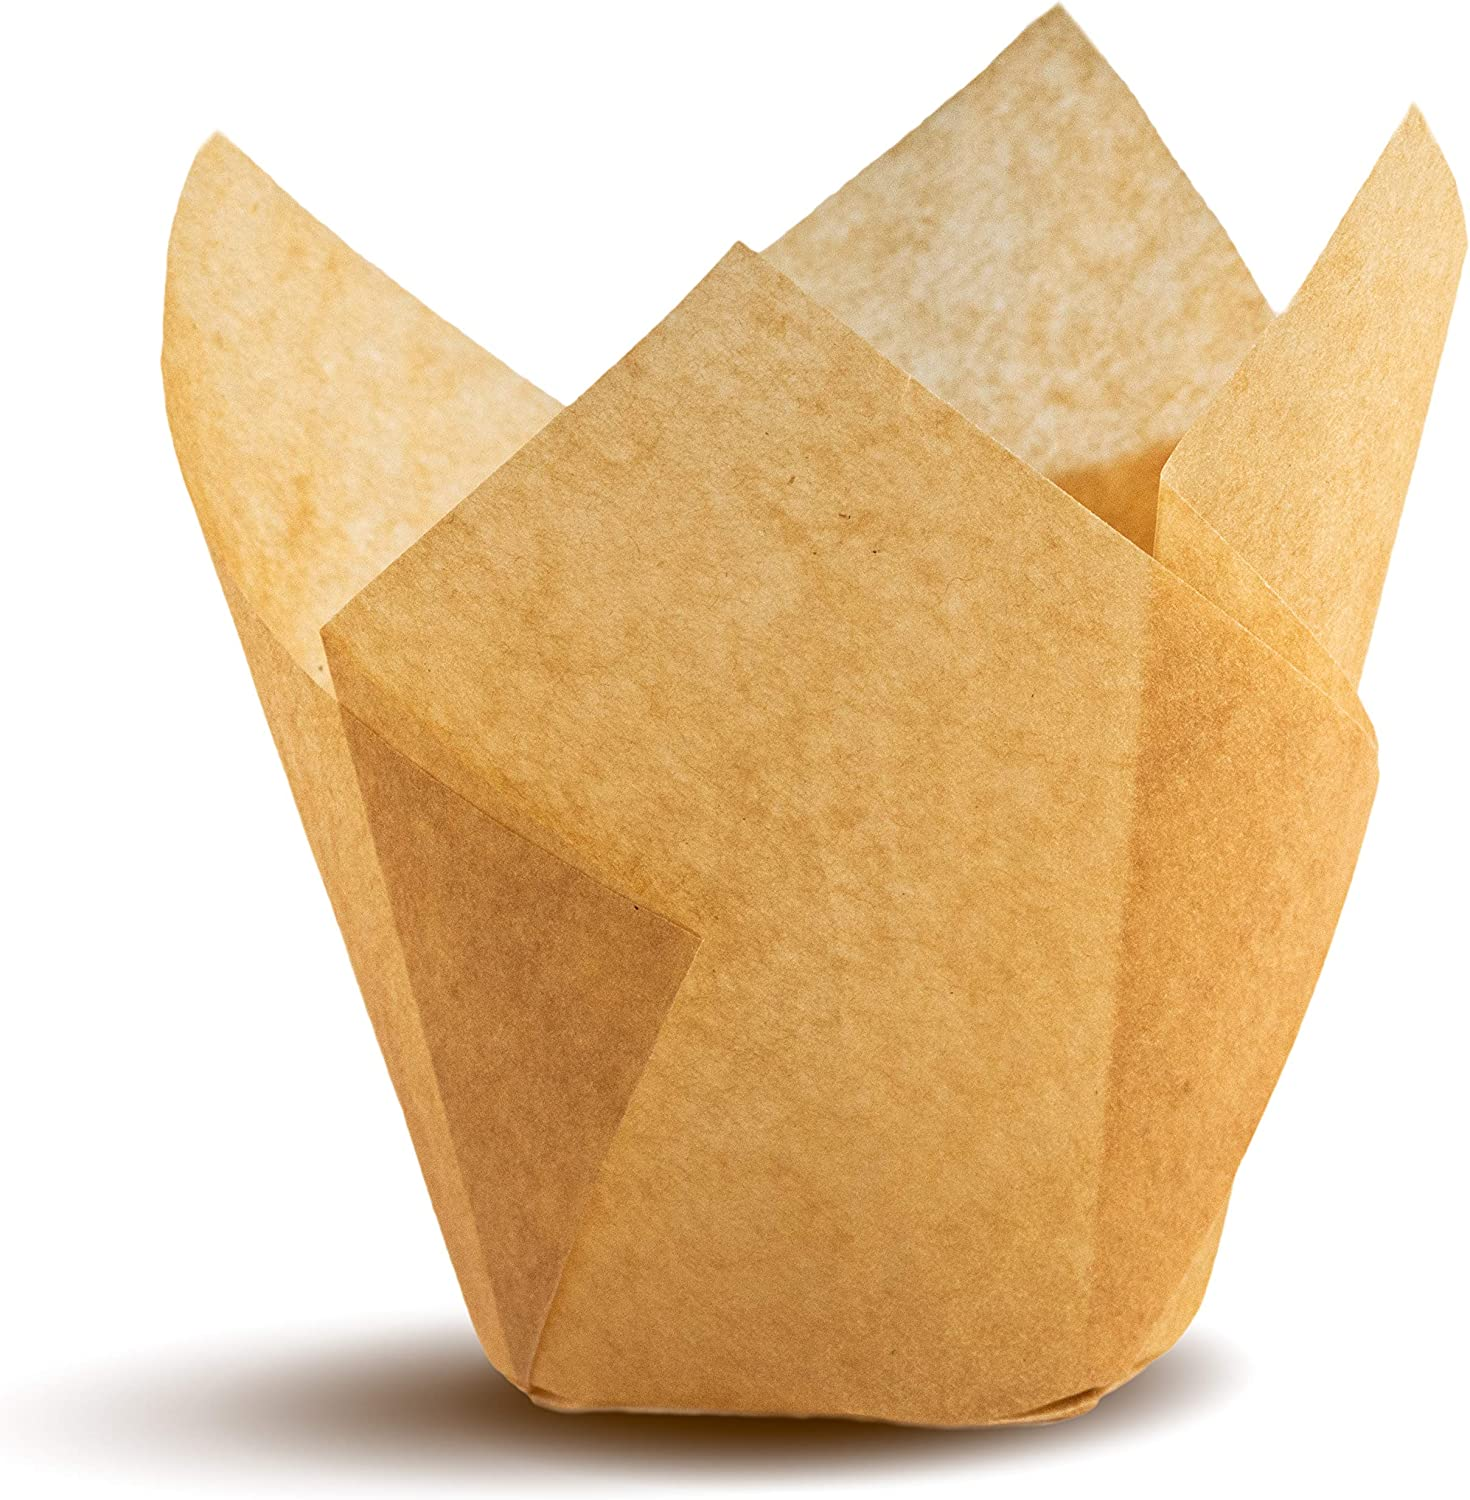 Tulip Cupcake Liners, Natural Baking Cups for Standard Size Cupcakes and Muffins Liners (300, Natural)